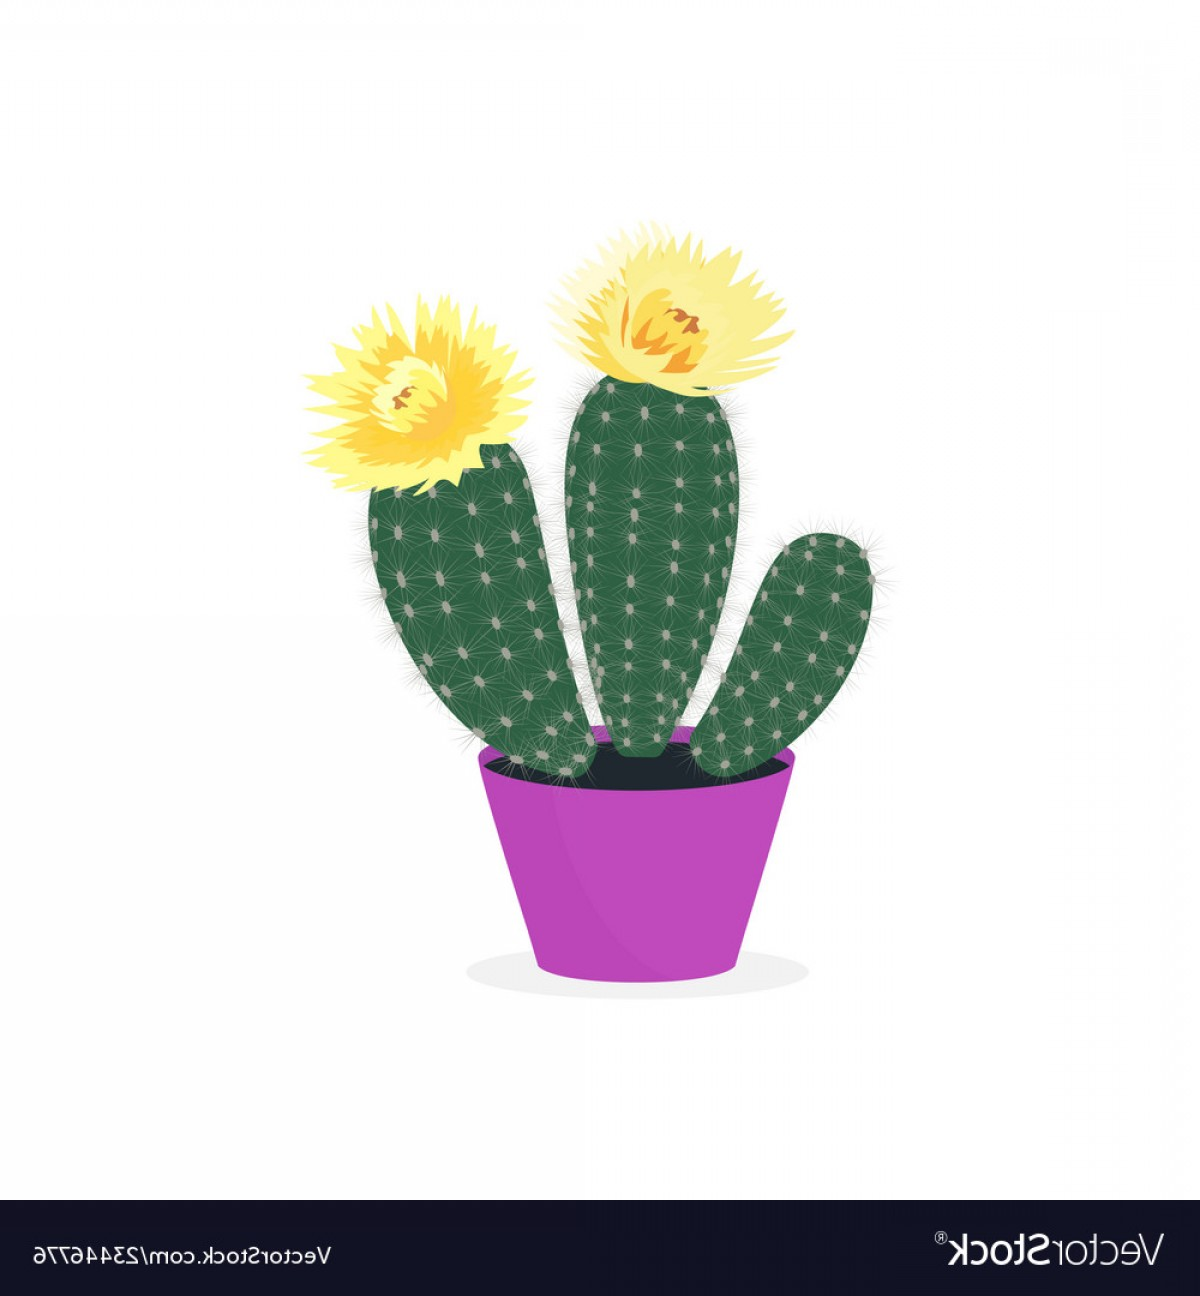 Potted Cactus Plant Vector: Blooming Cacti Cactus In A Pot Potted Home Plant Vector